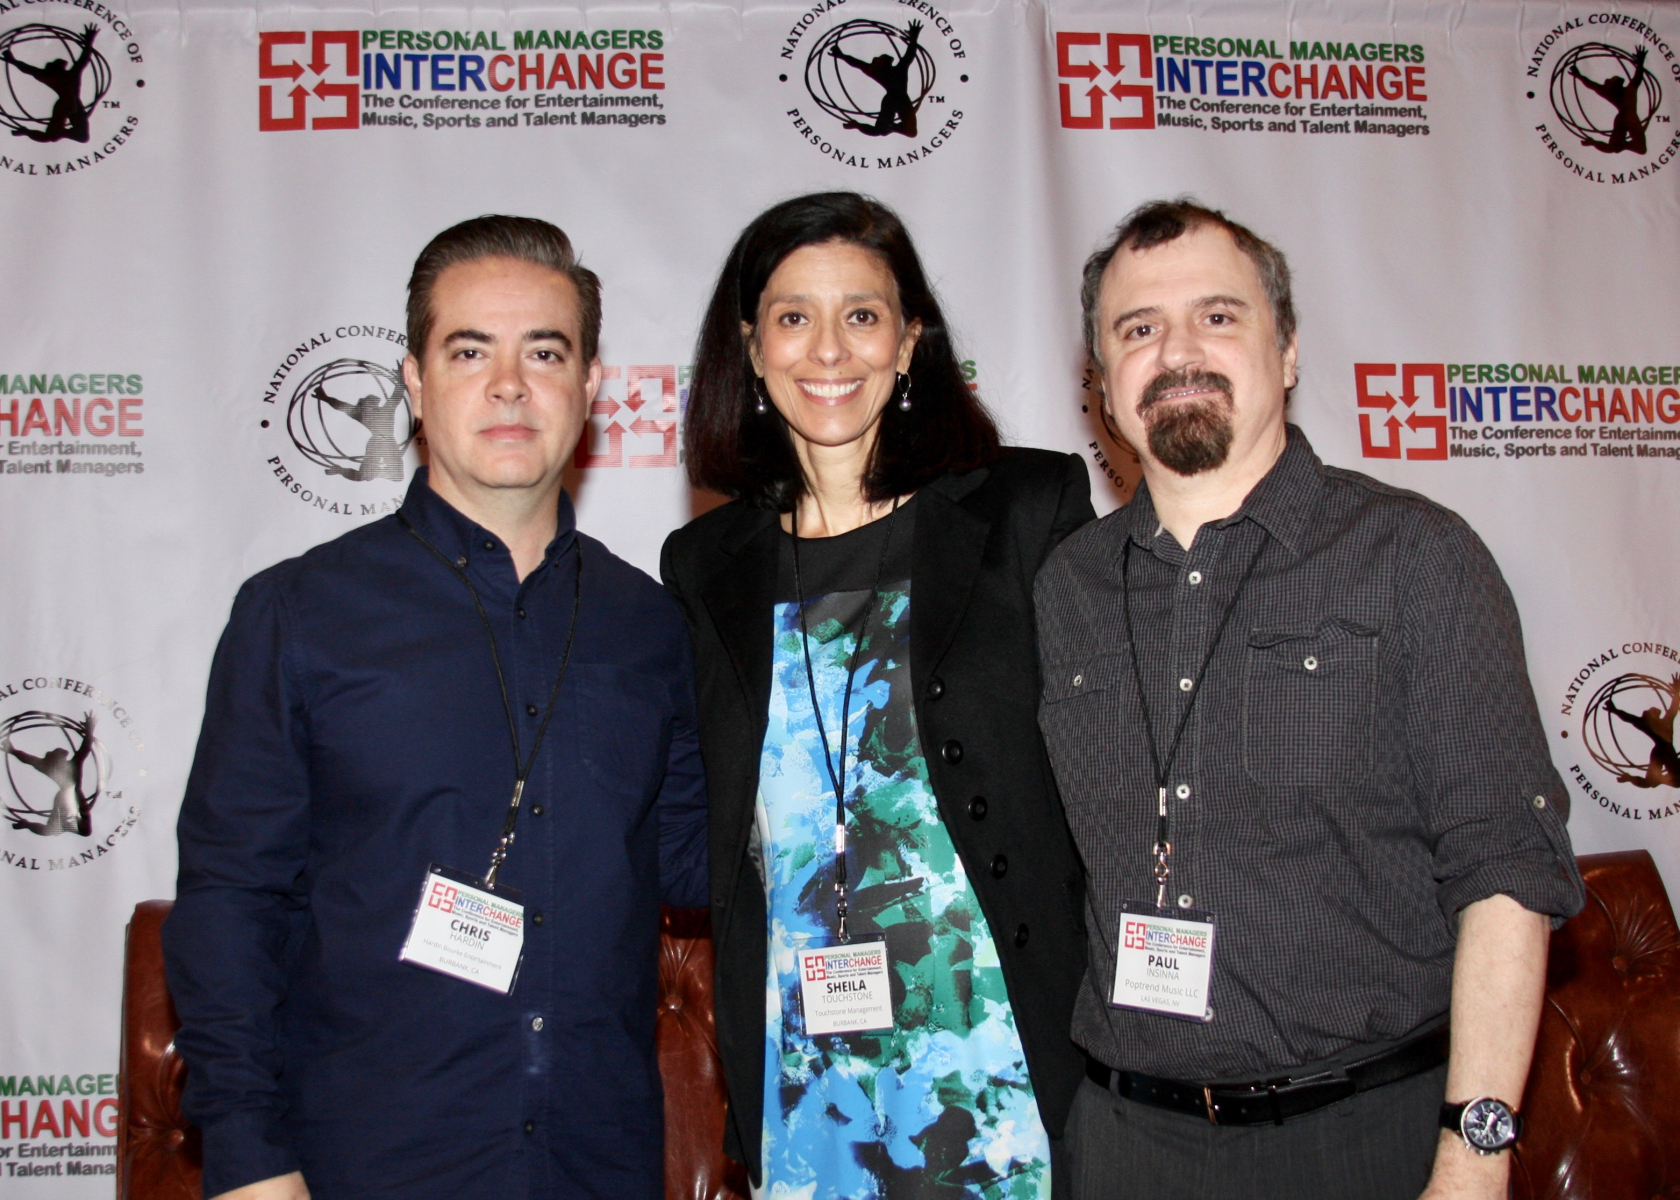 INTERCHANGE - National Conference of Personal Managers Inc